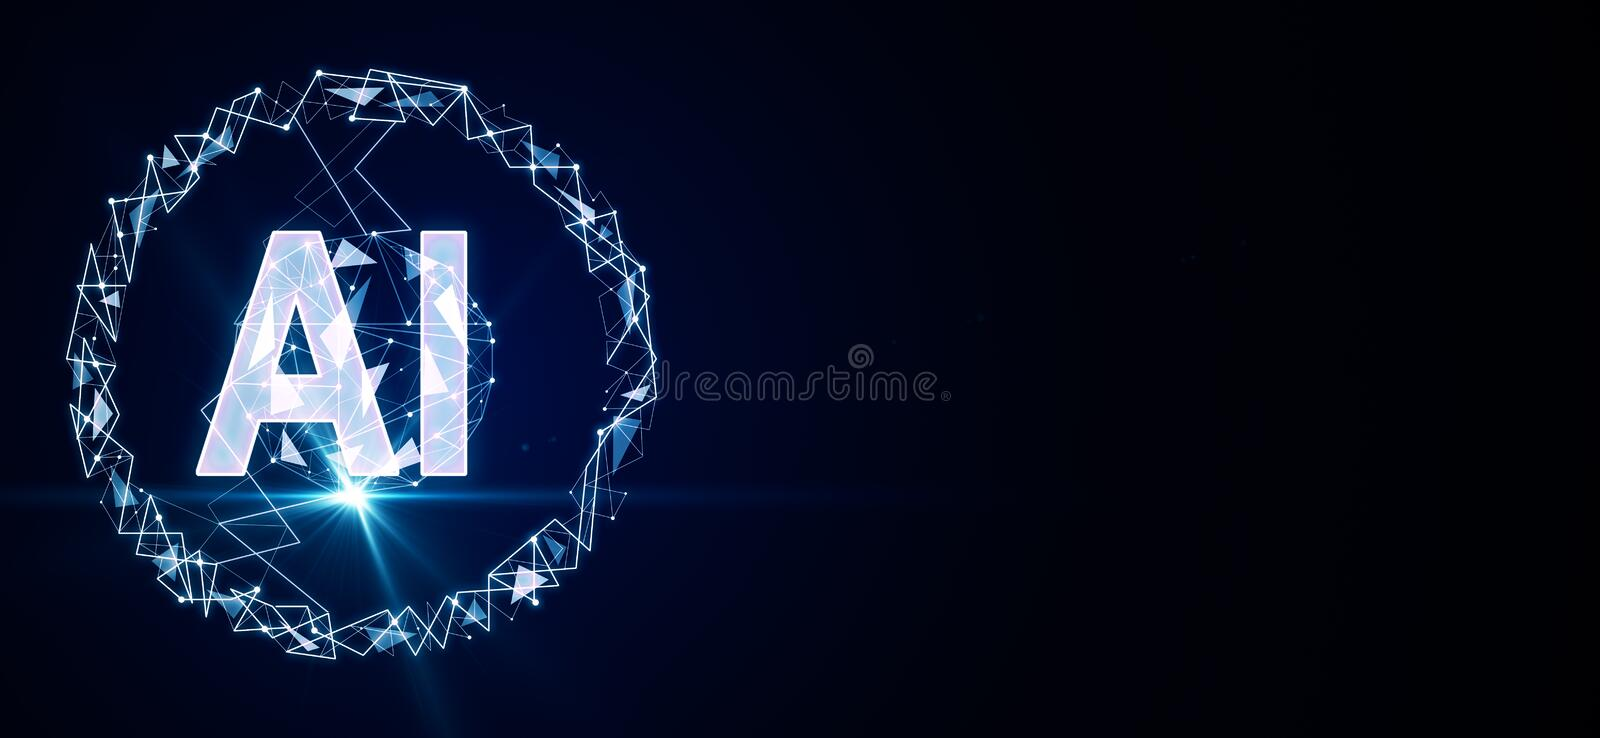 Artificial intelligence concept with big AI letters and blue flash at dark background stock illustration